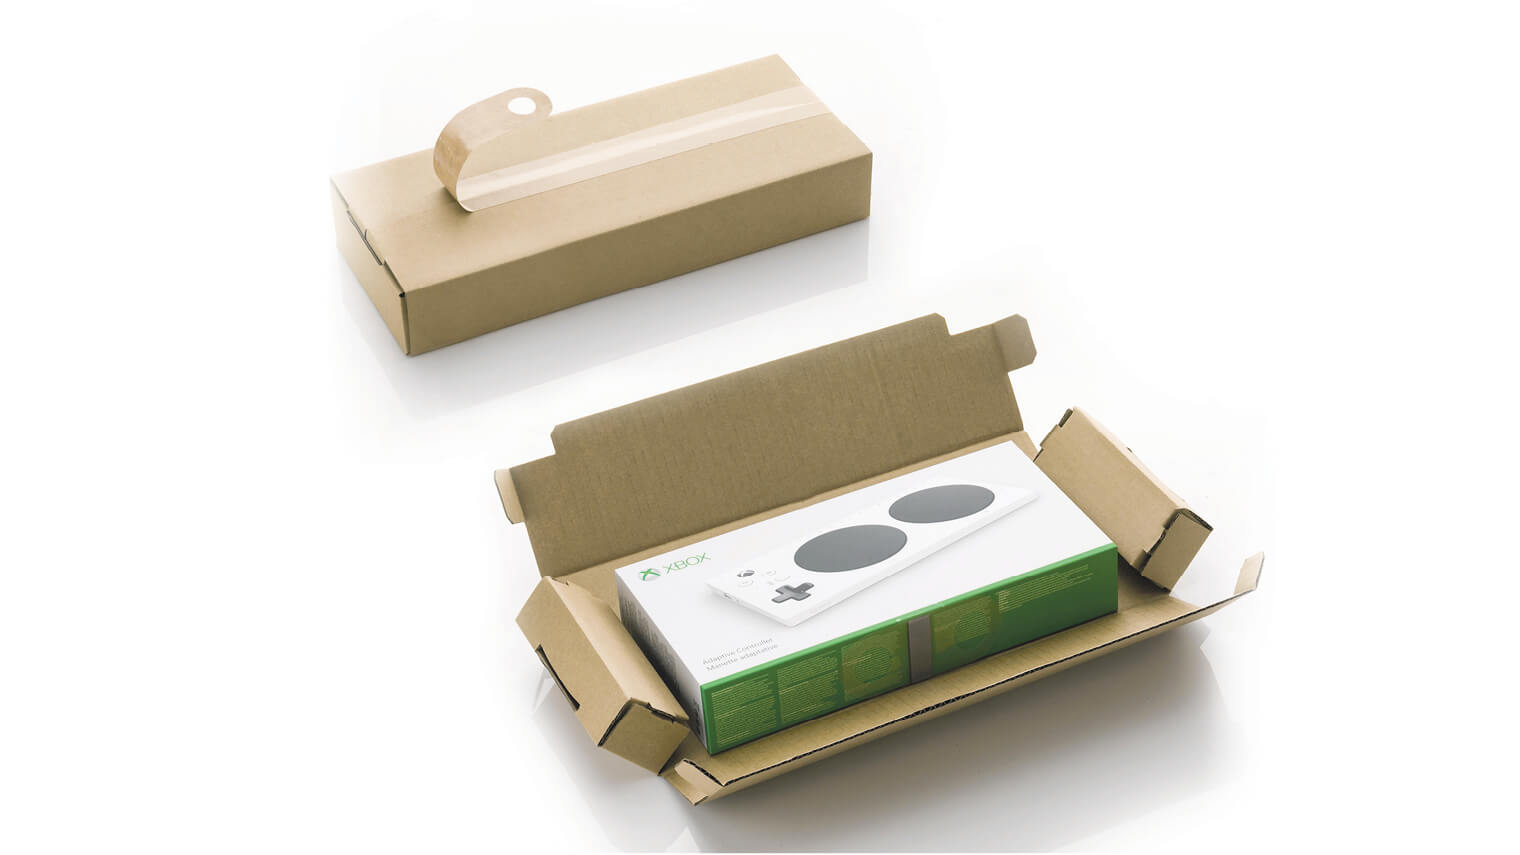 packaging-innovations-for-the-disabled (xbox)